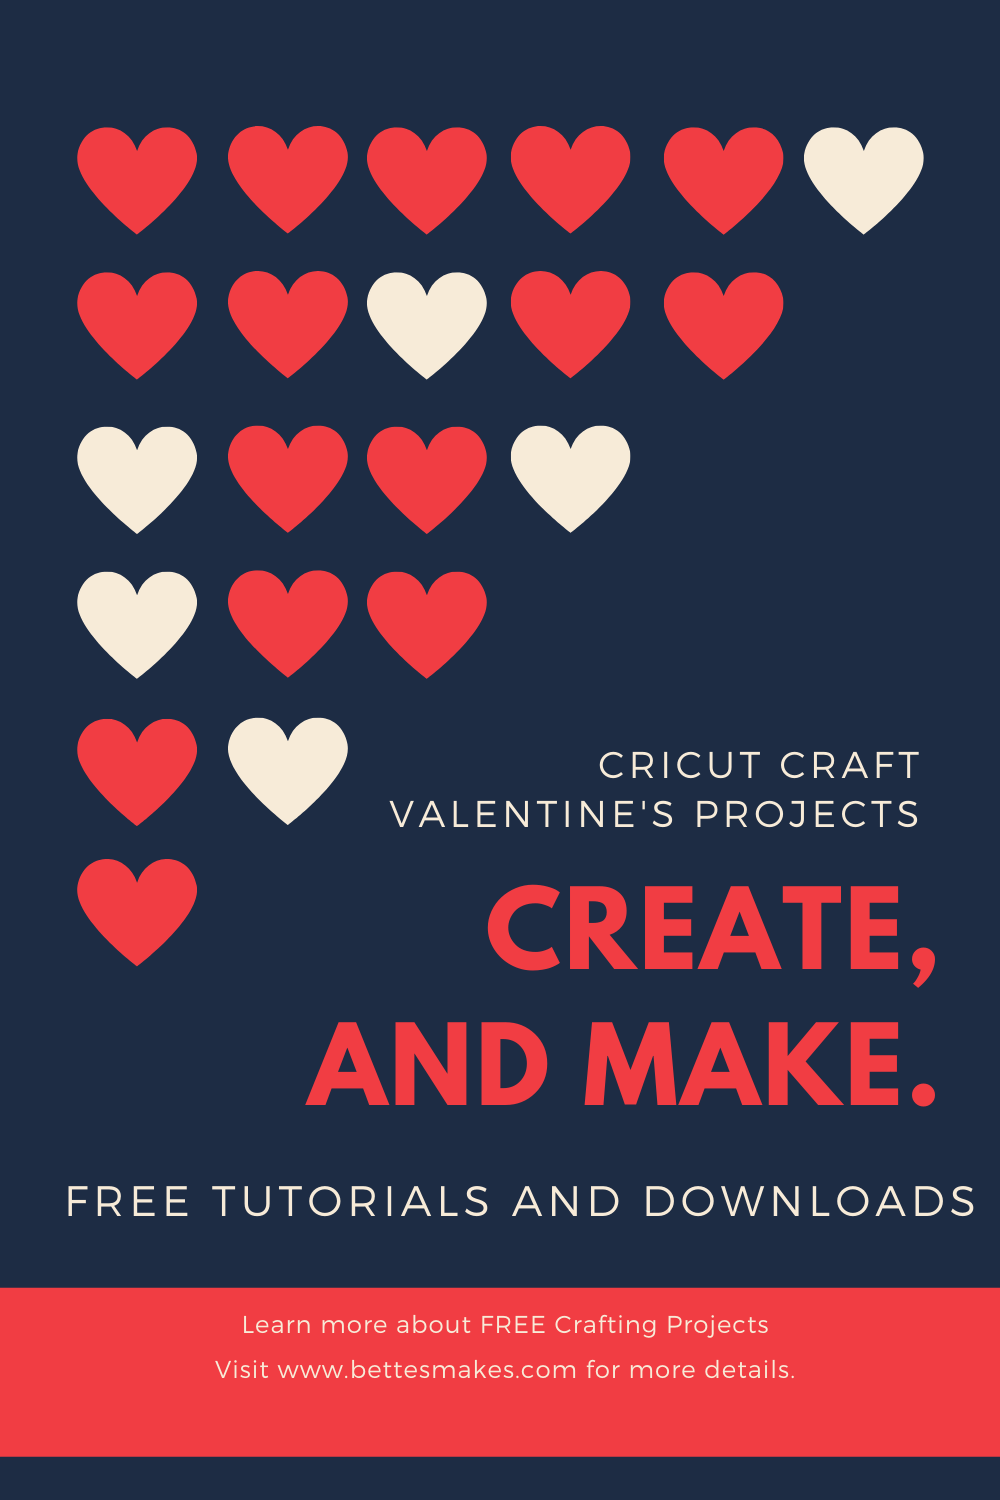 Cricut craft this Valentine popup card and give the gift of love. This is an easy to make handmade card project and perfect for giving to that someone special #cricut #cricutcraft #cardshandmade #papercraft #valentines